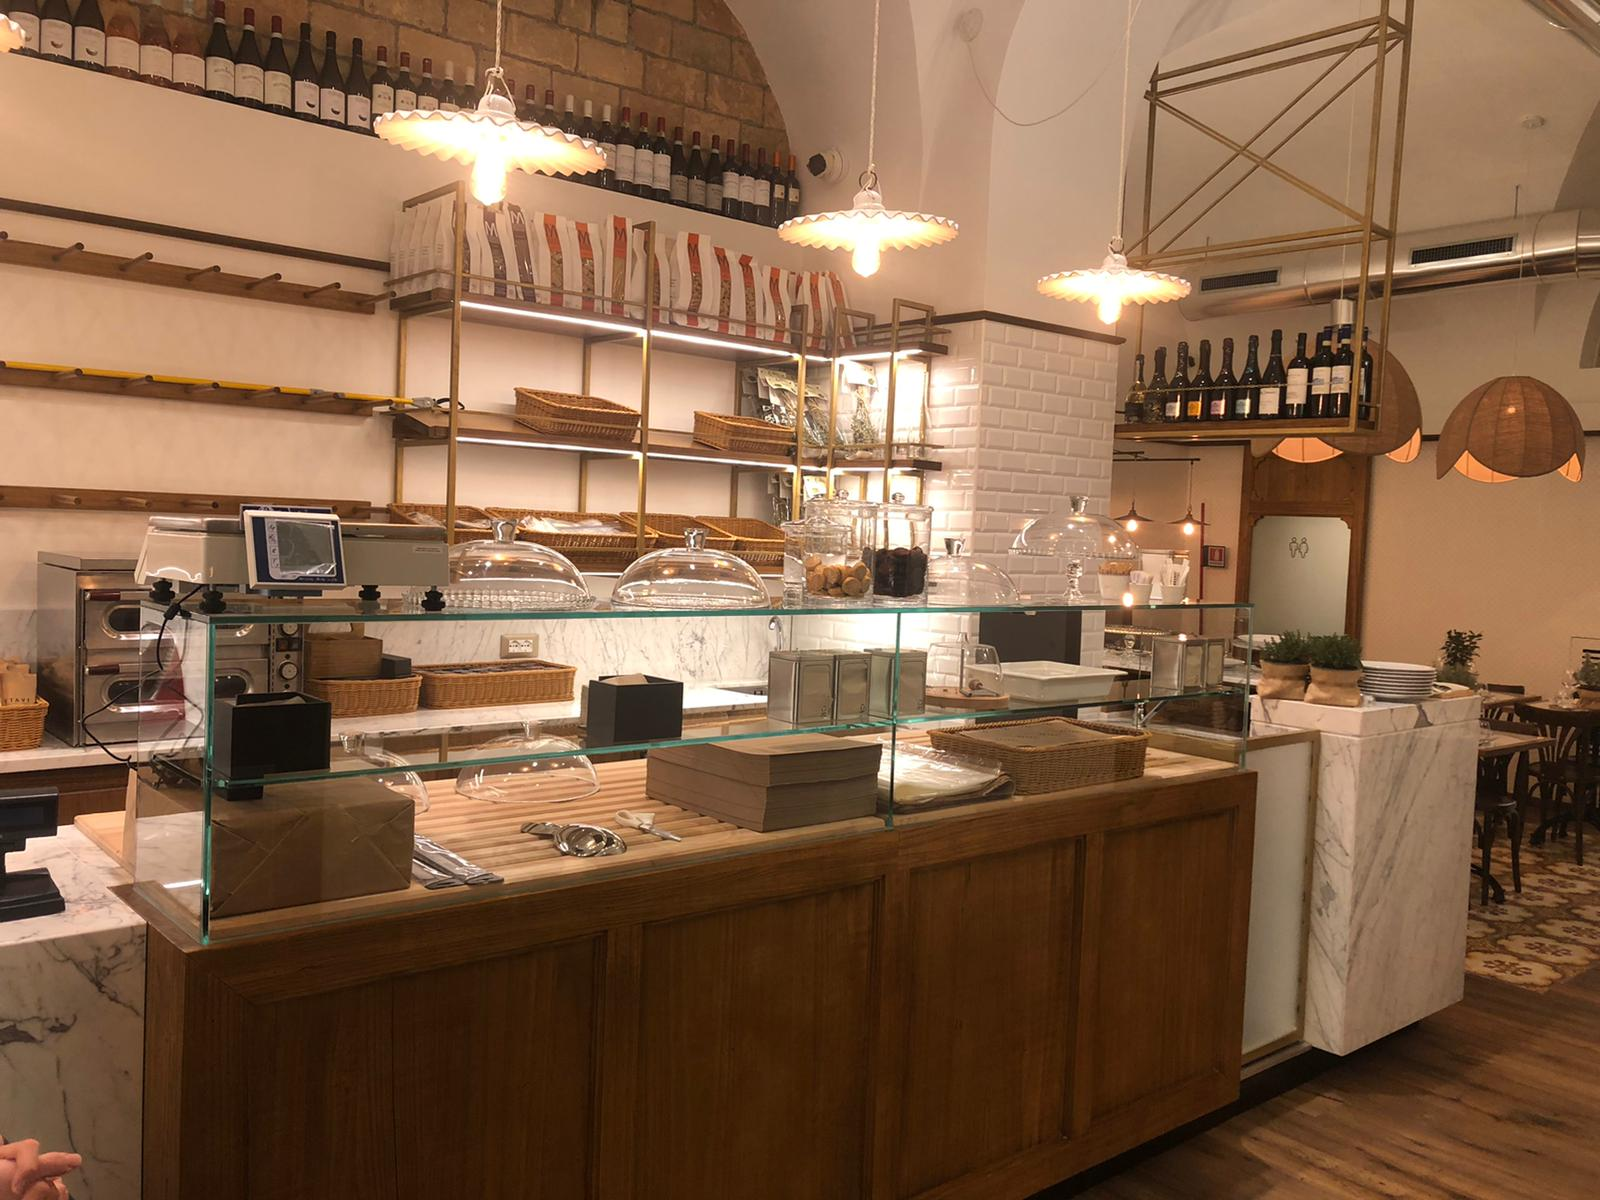 Antico Forno Ottavi - Lighting Design srl